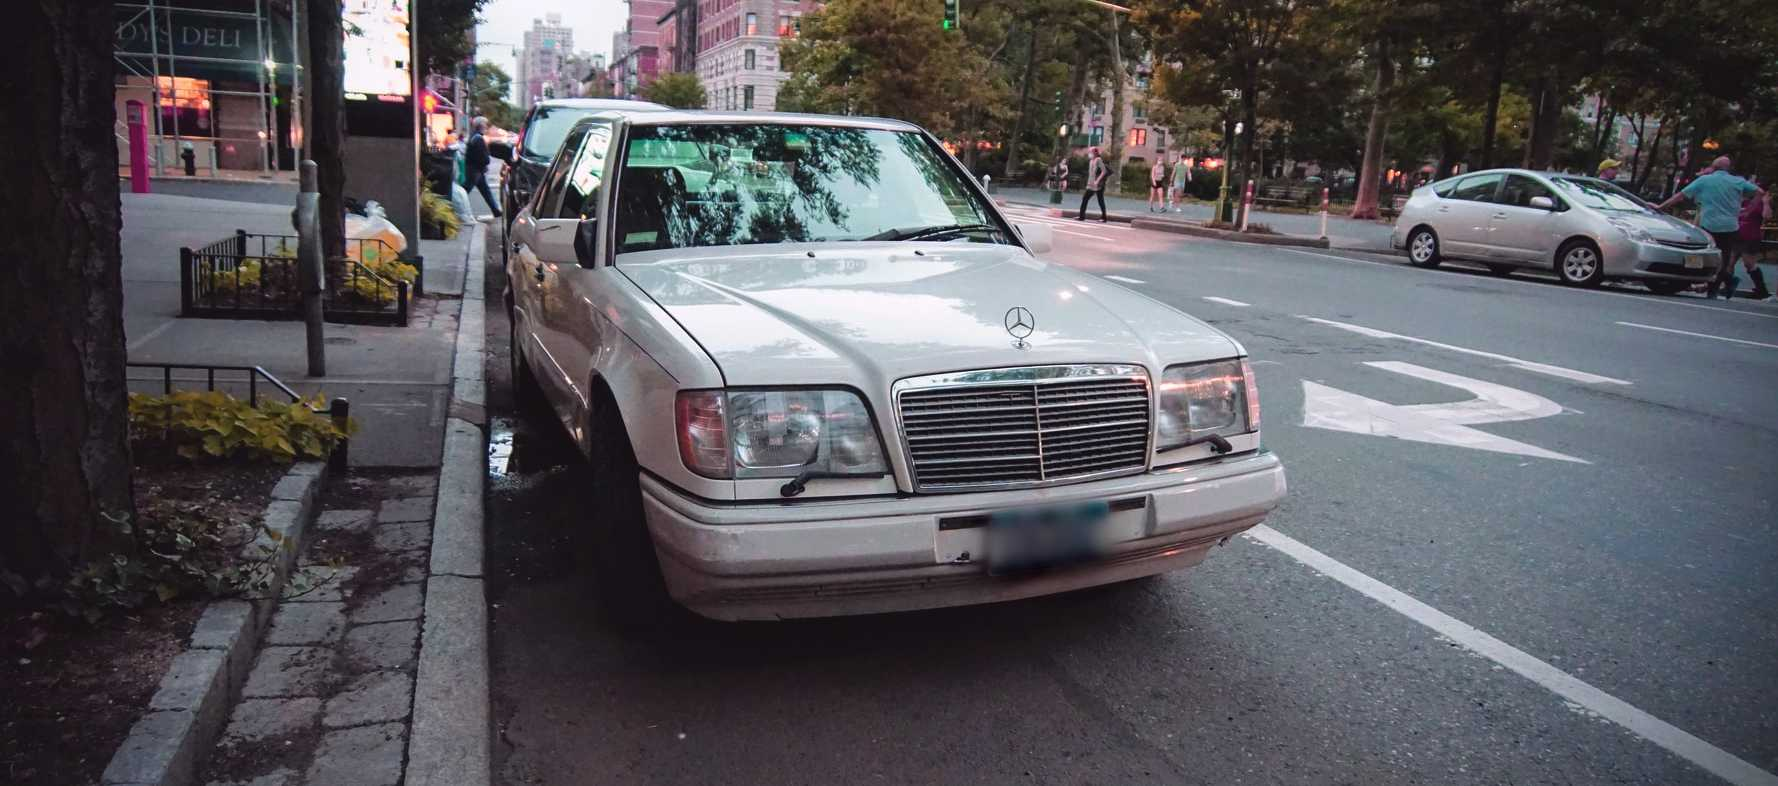 Parked Old Car in New York City   Kids Car Donations